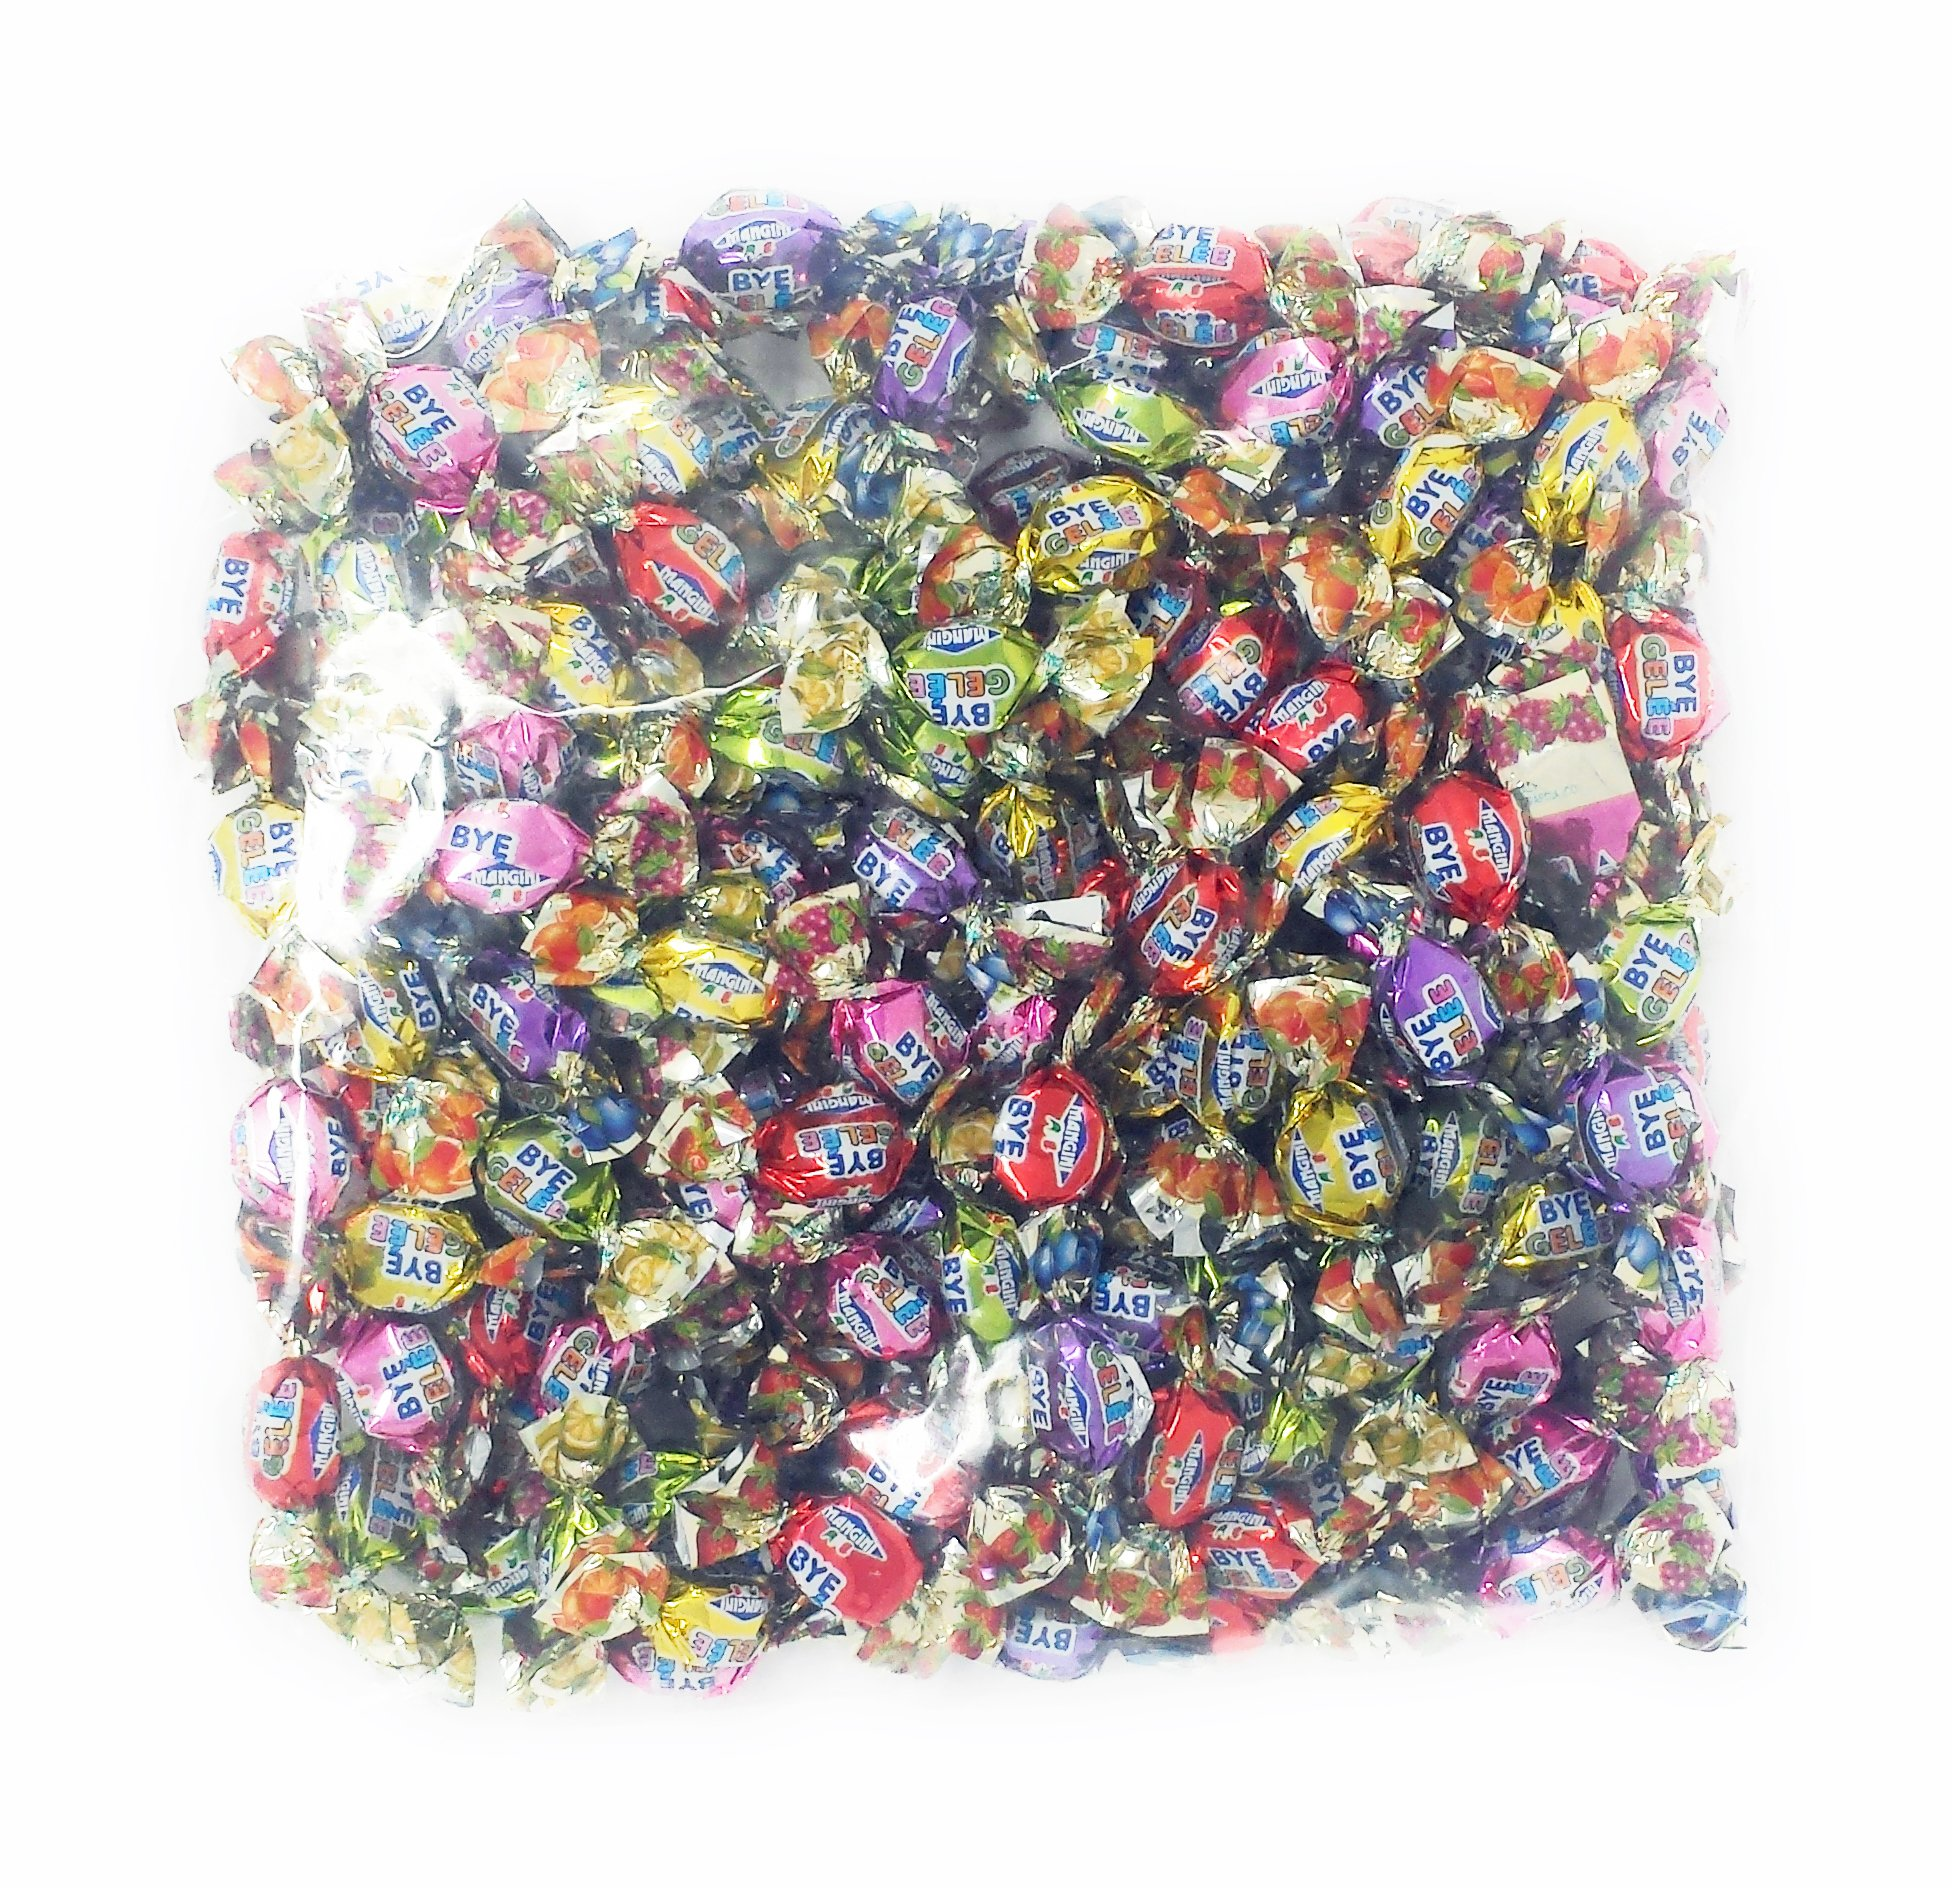 Mangini Candy Italian Fruit Gels, Gelee Assorted Fruit Candy (1 bag) 2.2 Pound Bag, Fruit Jellies